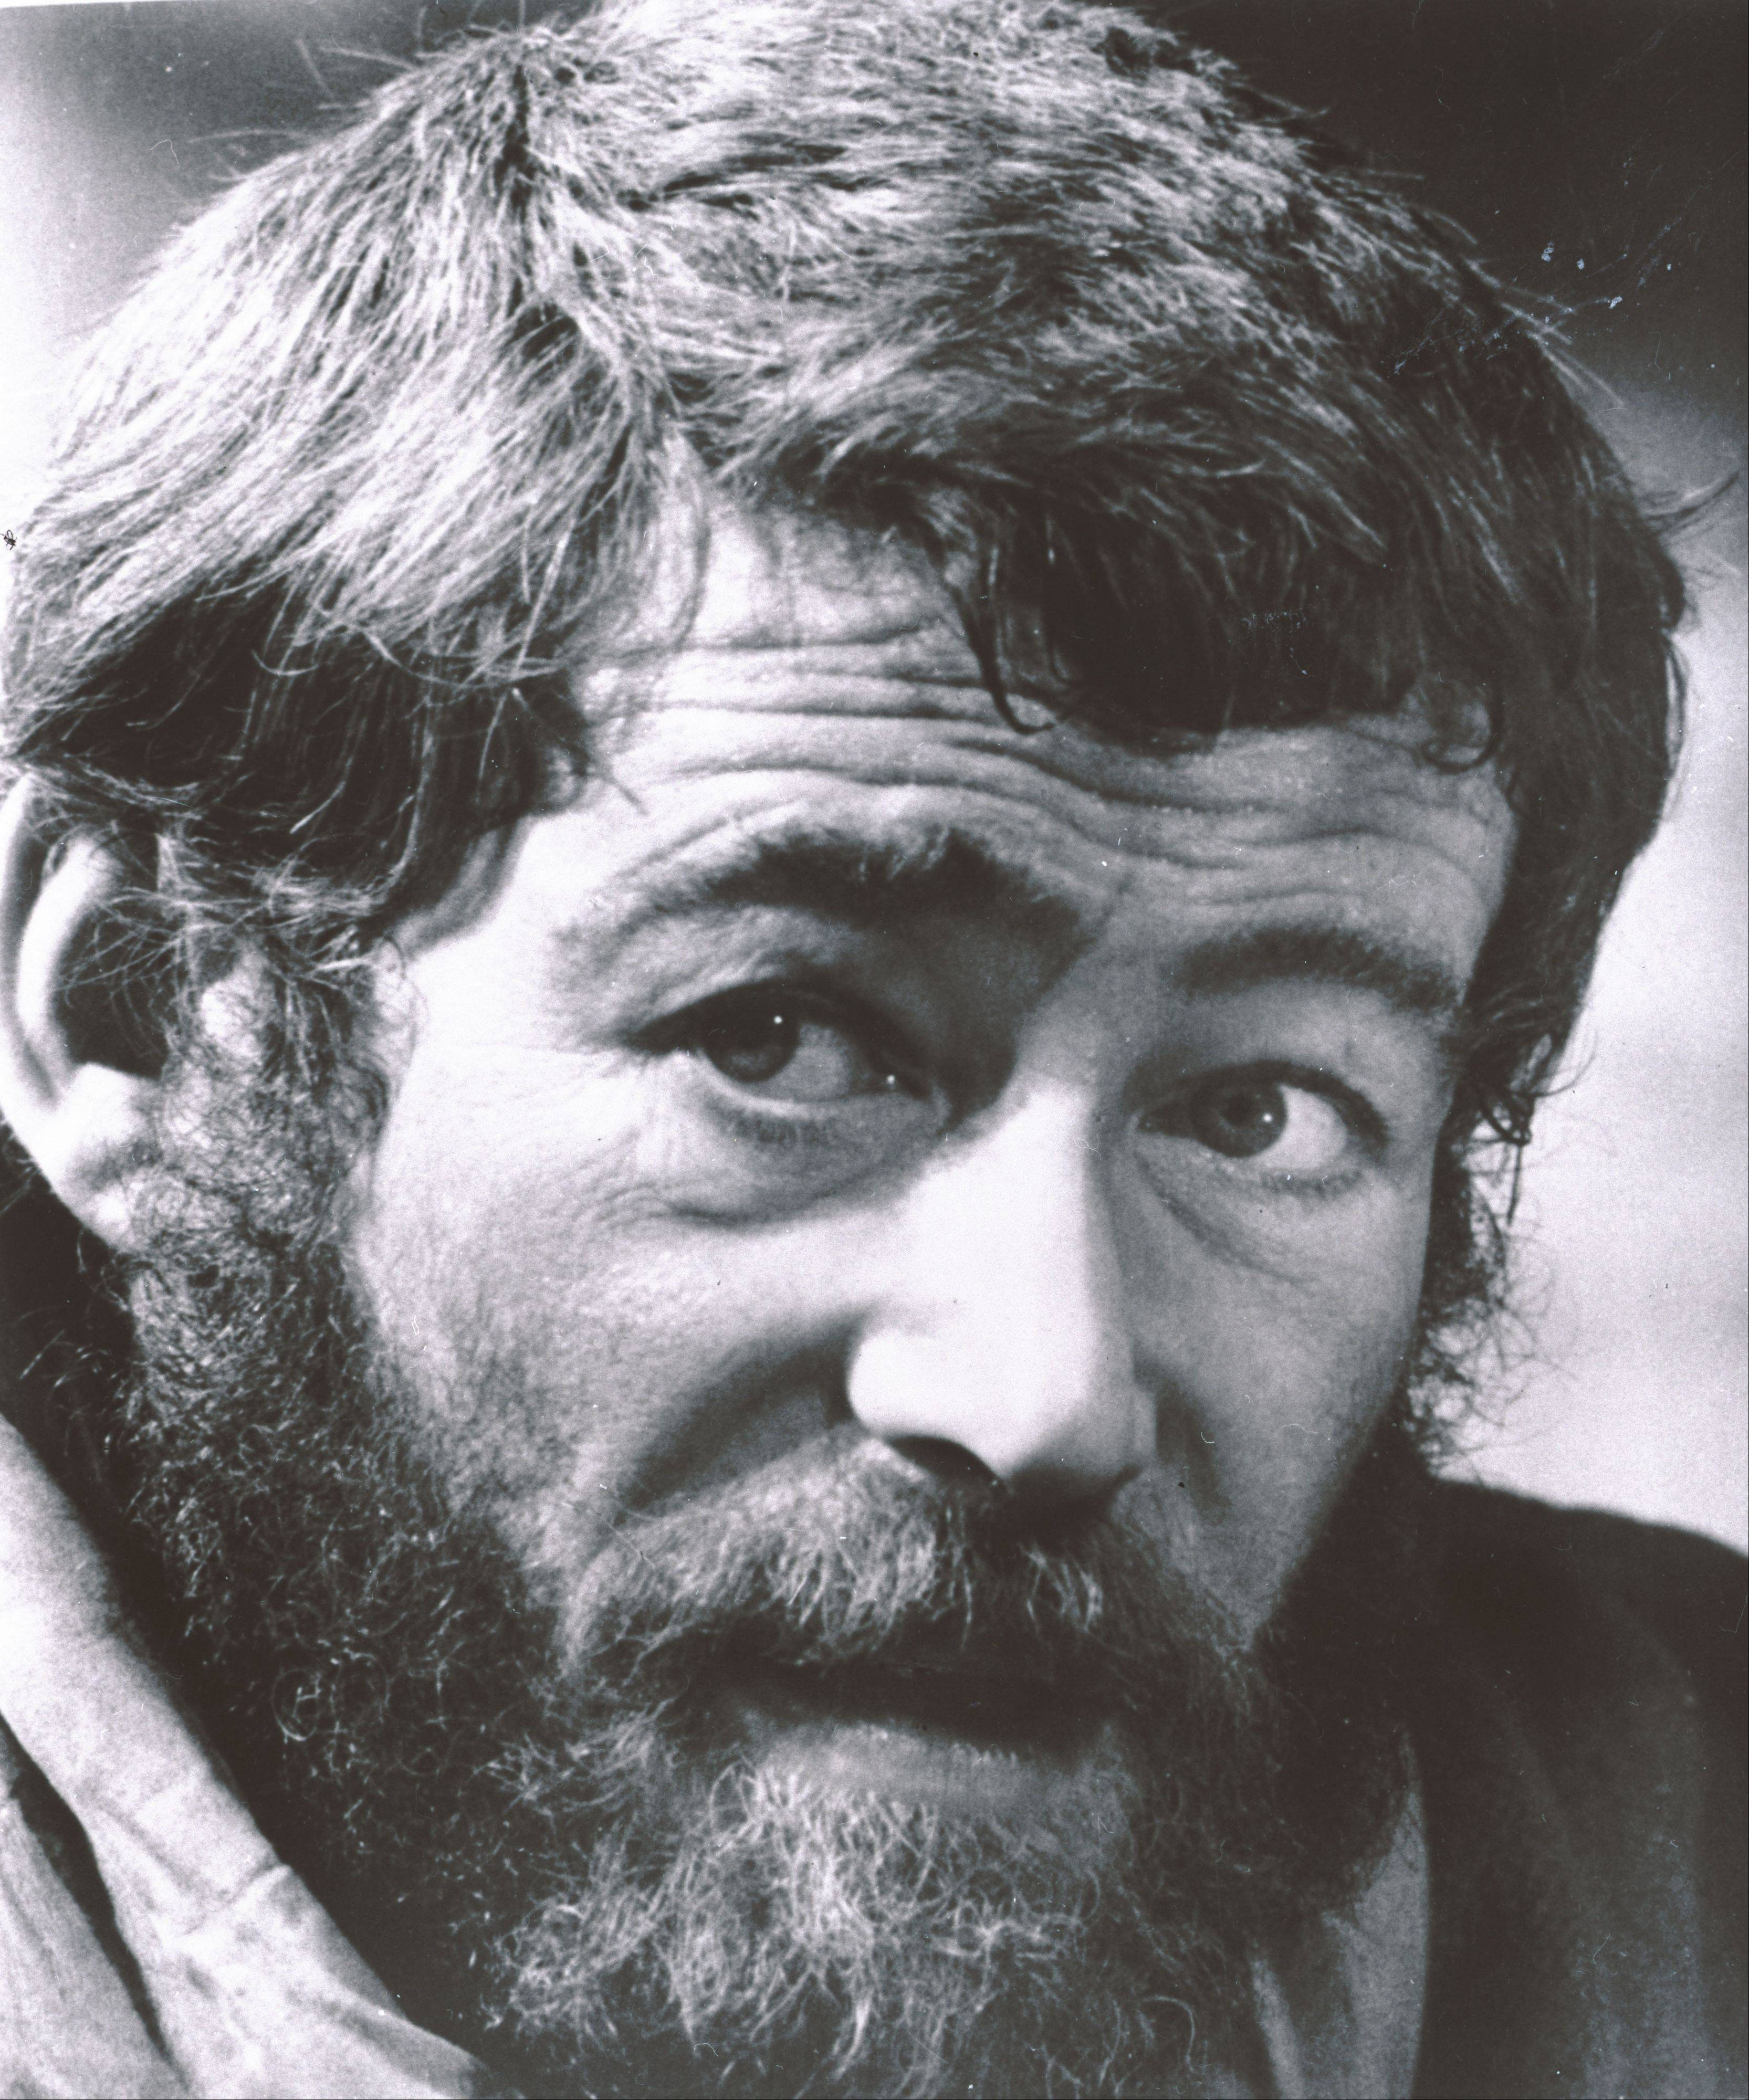 "In this 1968 file photo, Actor Peter O'Toole is shown from the movie ""Lion in Winter."" O'Toole, the charismatic actor who achieved instant stardom as Lawrence of Arabia and was nominated eight times for an Academy Award, has died. He was 81. O'Toole's agent Steve Kenis says the actor died Saturday, Dec. 14, 2013 at a hospital following a long illness."